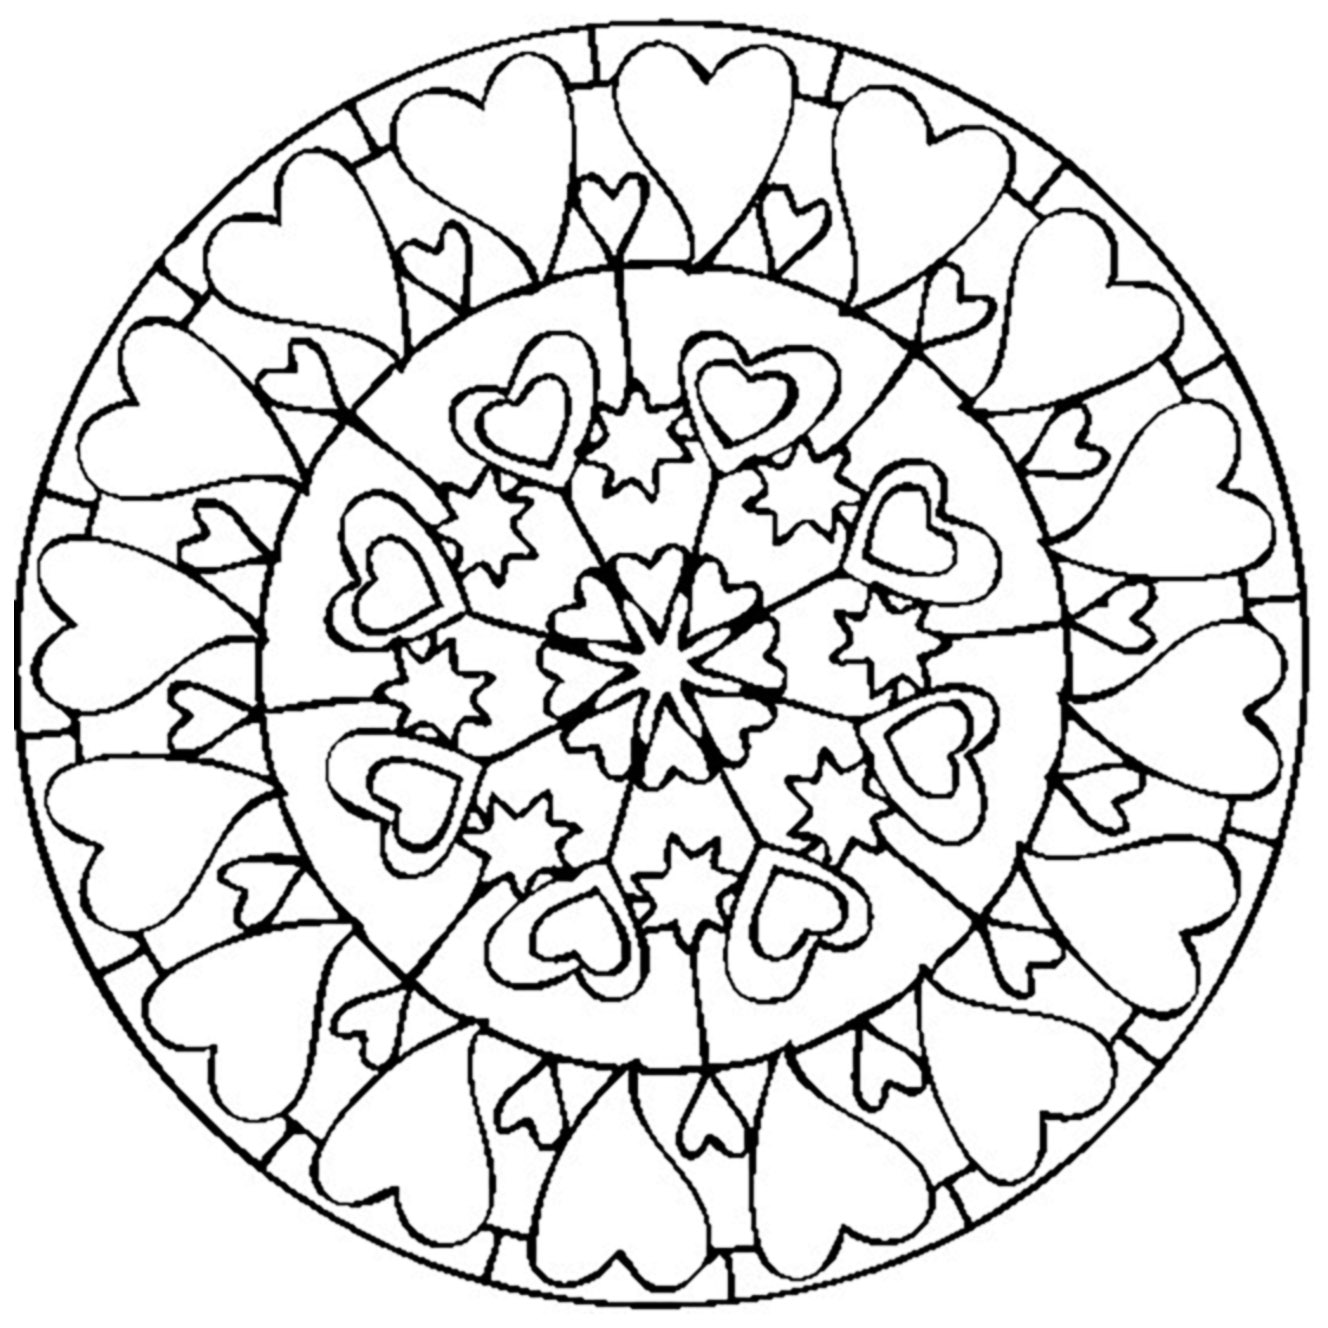 Coloring pages for adults valentines day - Mandala Valentines Day Love Free To Print